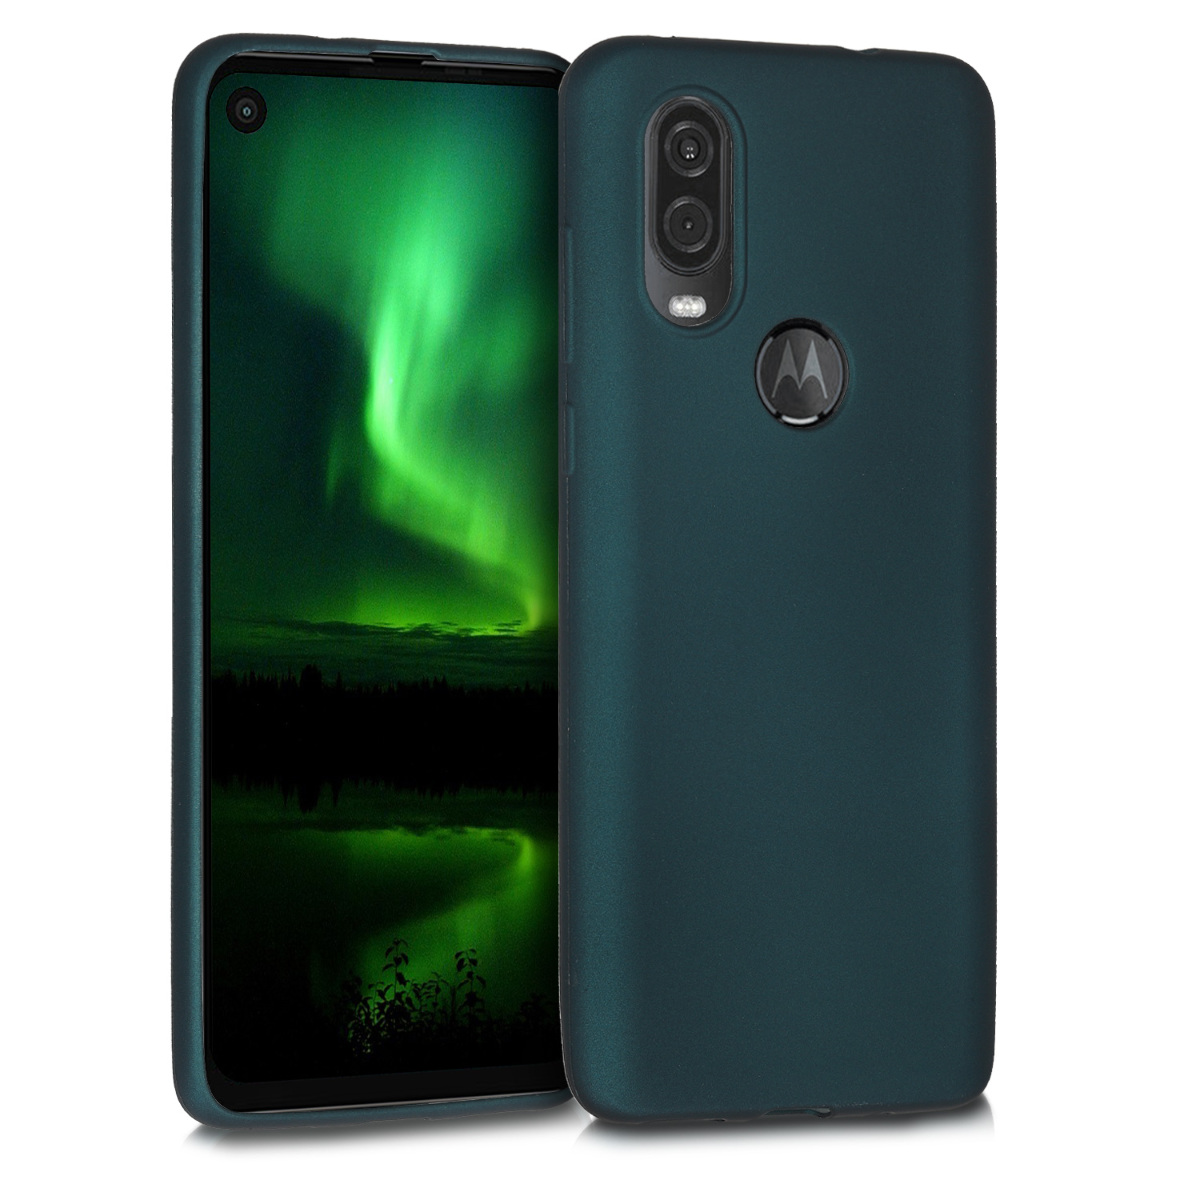 KW Θήκη Σιλικόνης Motorola One Vision - Metallic Teal (49914.14)